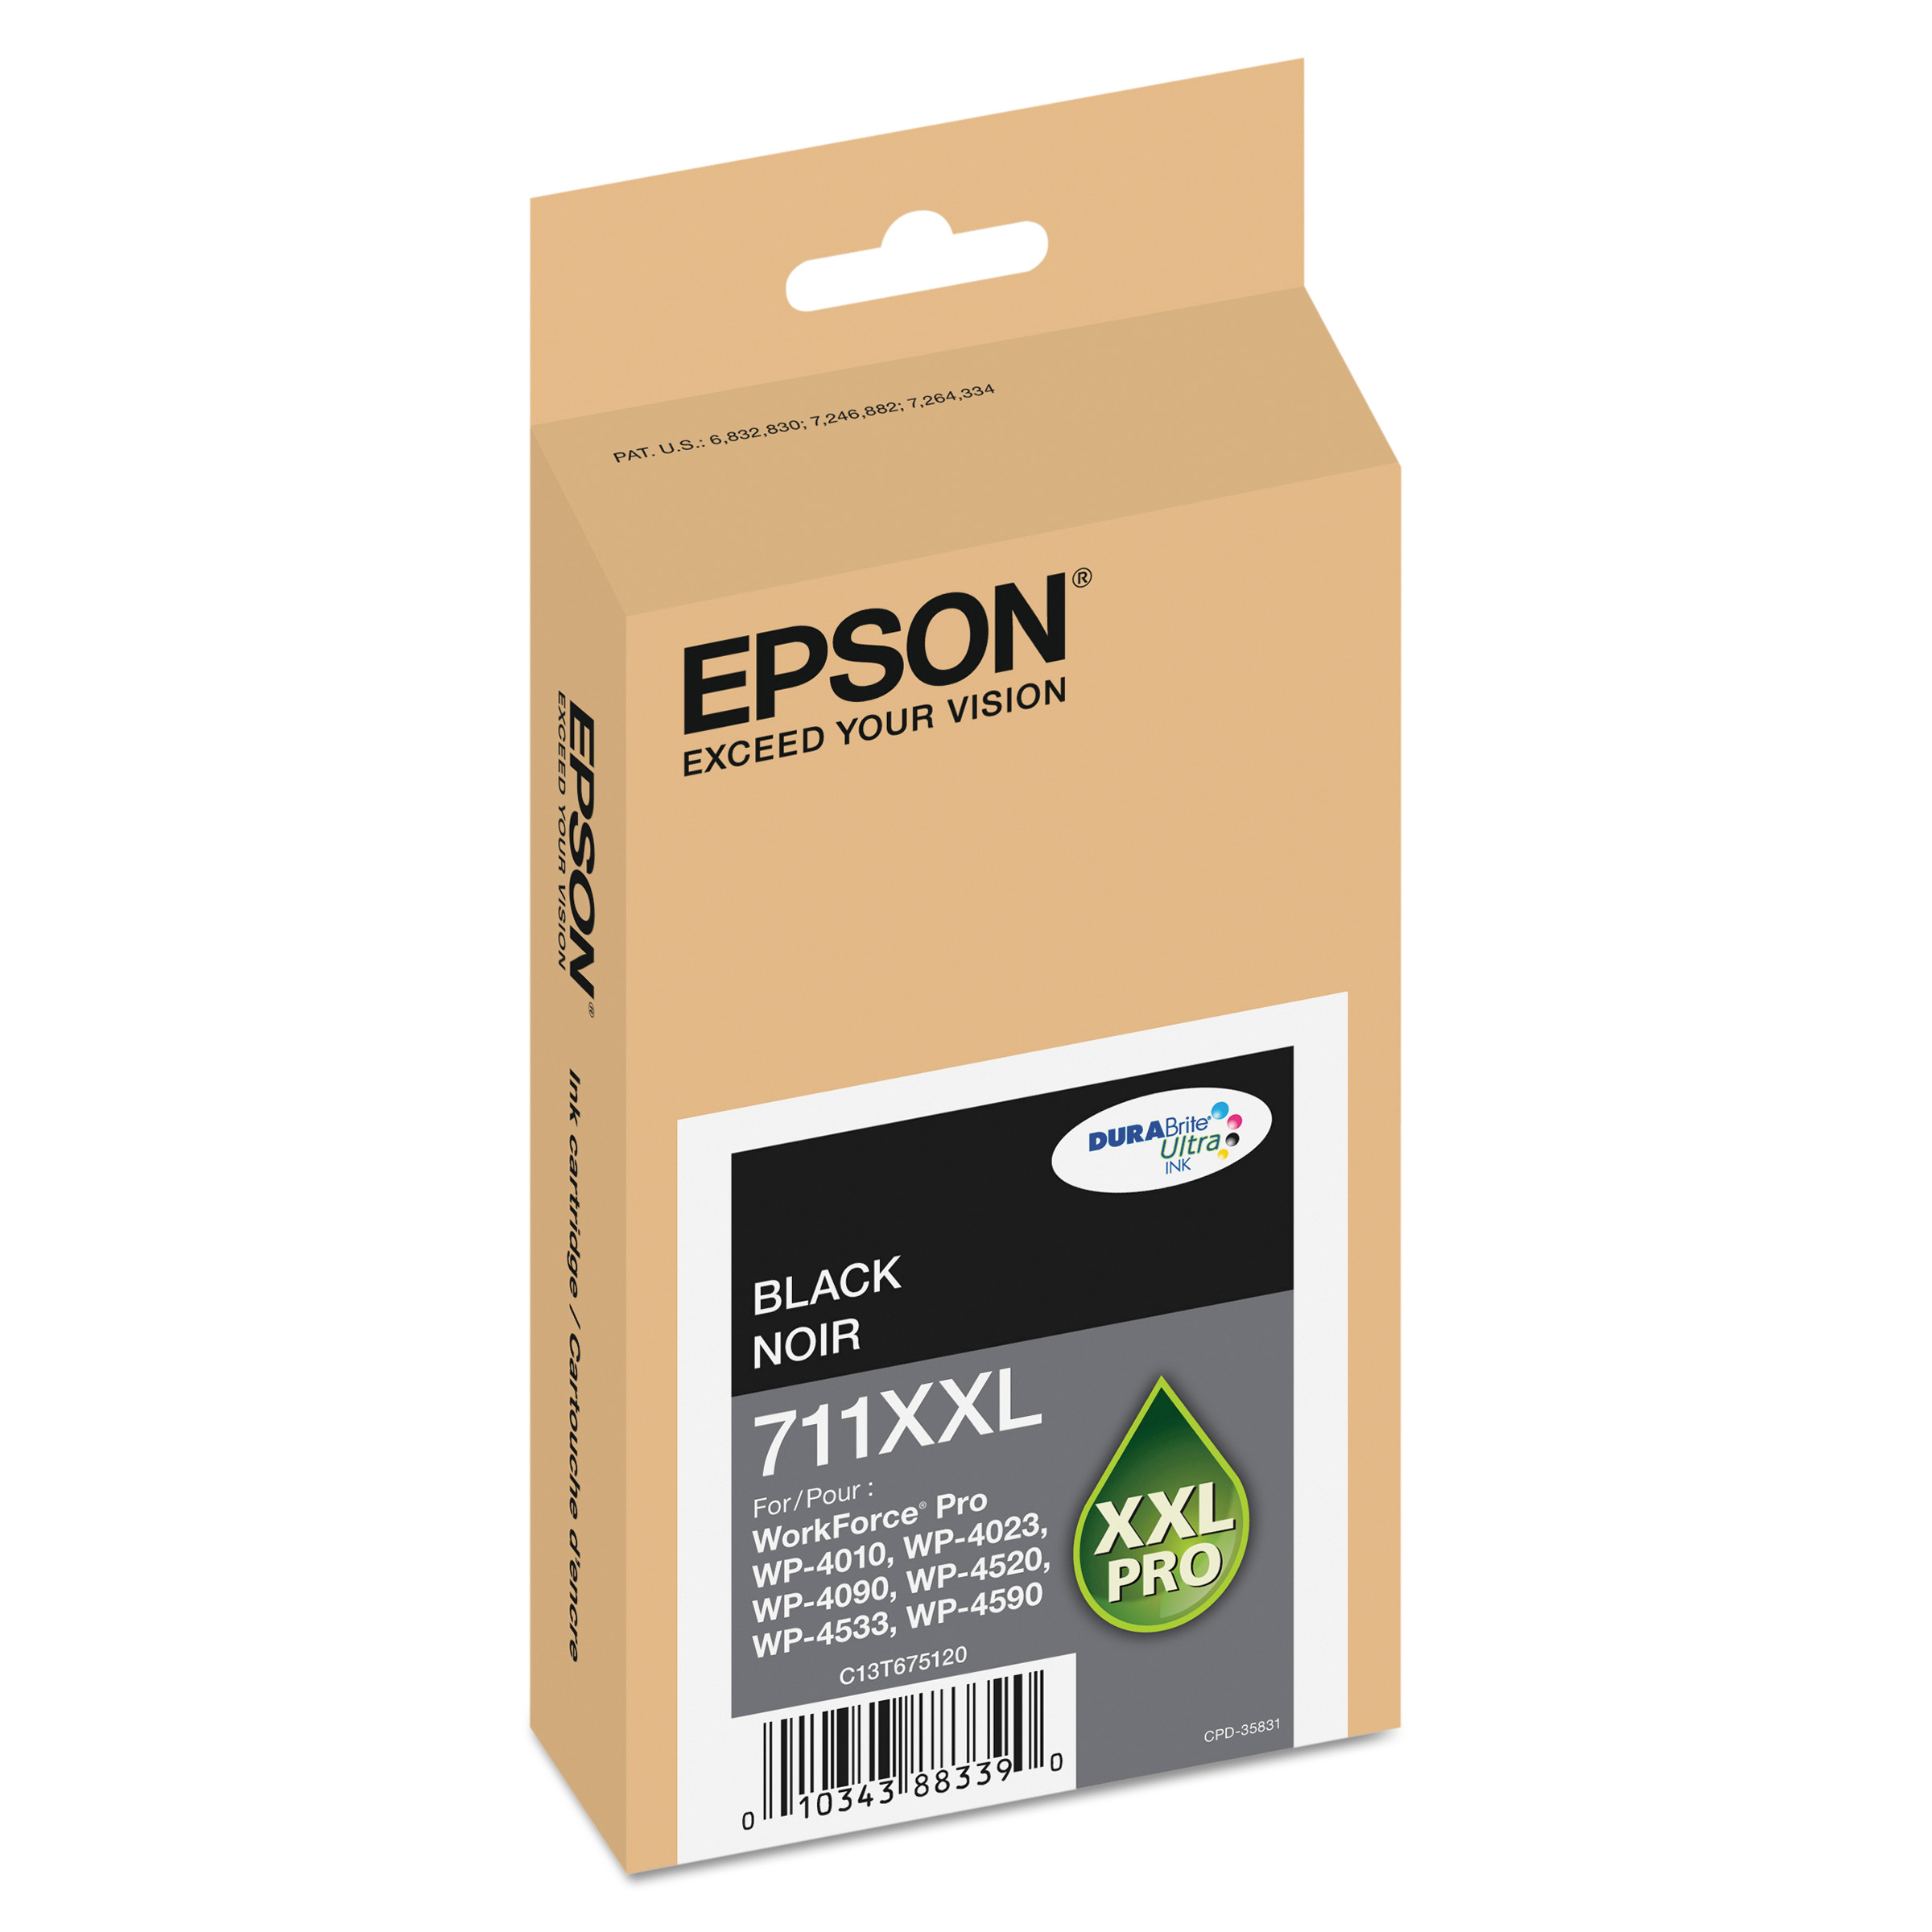 Epson T711XXL120 (711XL) DURABrite Ultra High-Yield Ink, Black by Epson